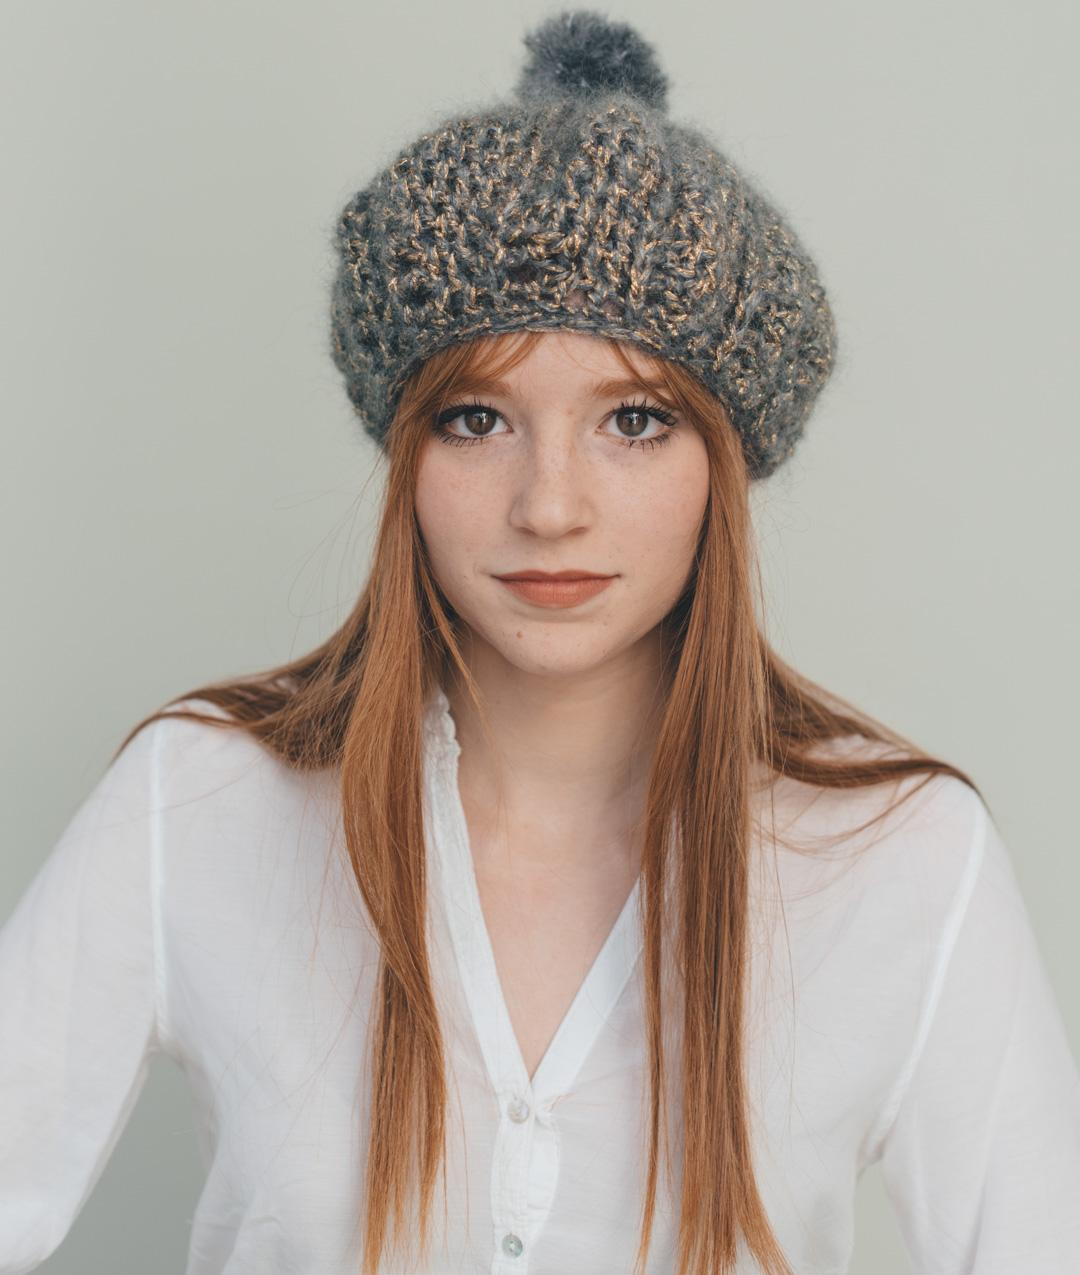 Hats and Beanies - Wool - Party Girls Hat - 1